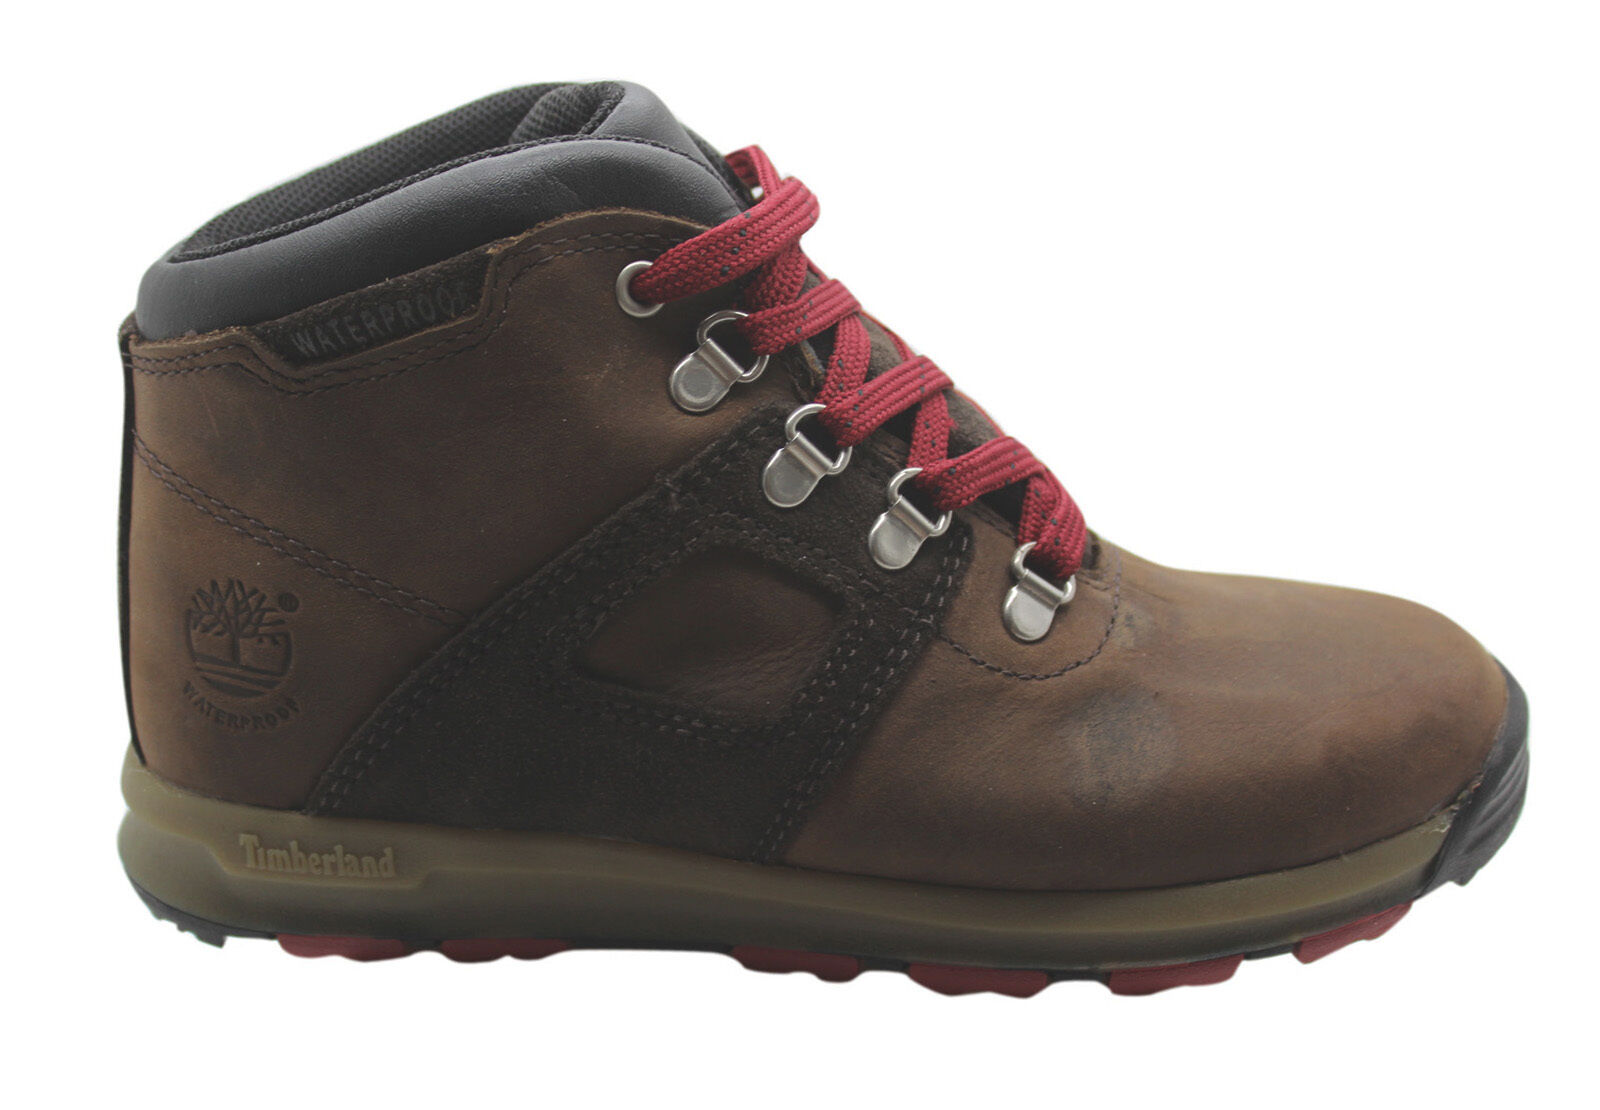 Details about Timberland Scramble Waterproof Youths Hiker Boots Brown Leather Hiking 4879R B73